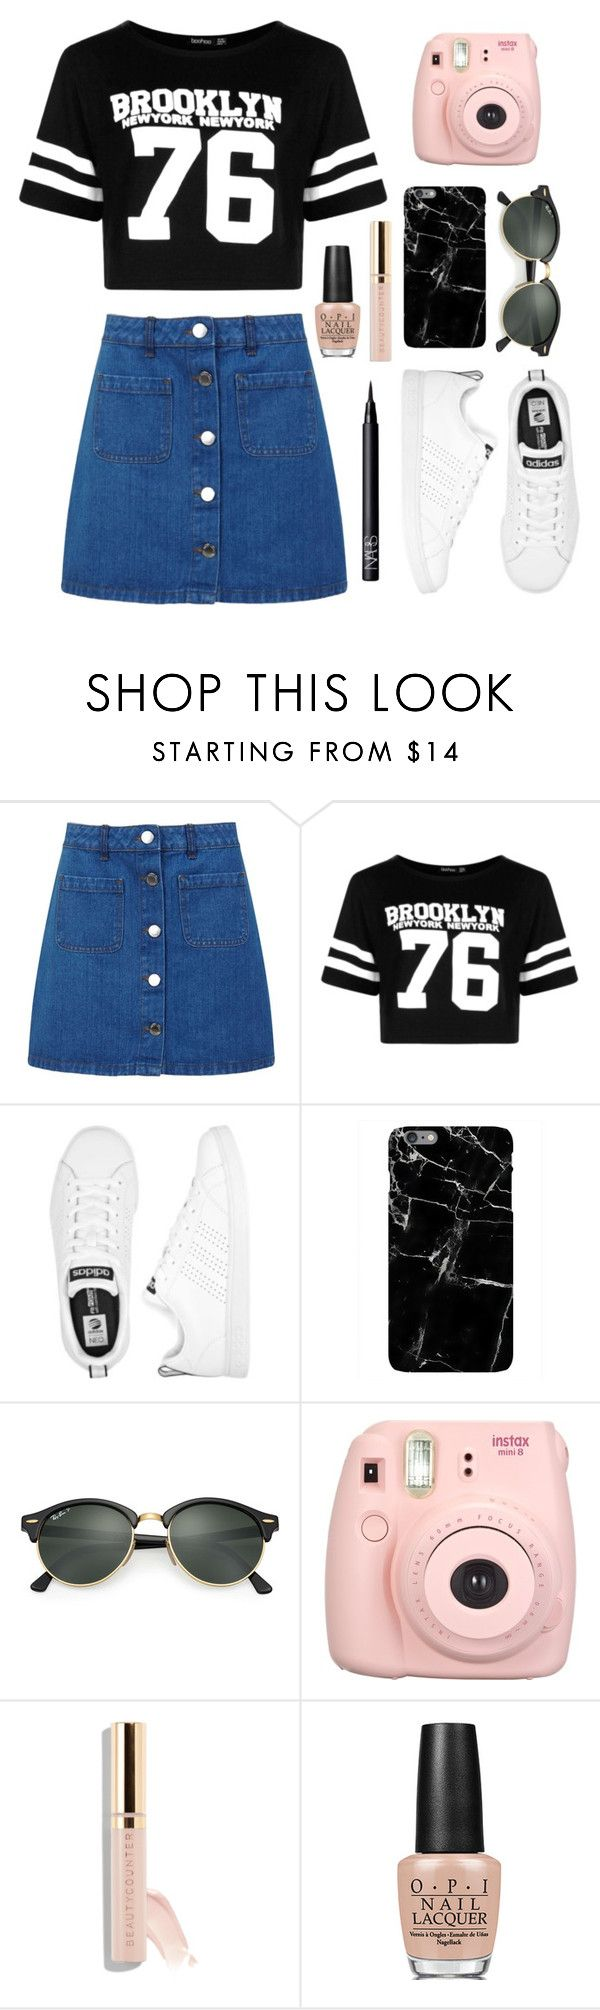 """Denim Skirt"" by neirak ❤ liked on Polyvore featuring Miss Selfridge, Boohoo, adidas, Ray-Ban, Fujifilm, Beautycounter, OPI and NARS Cosmetics"